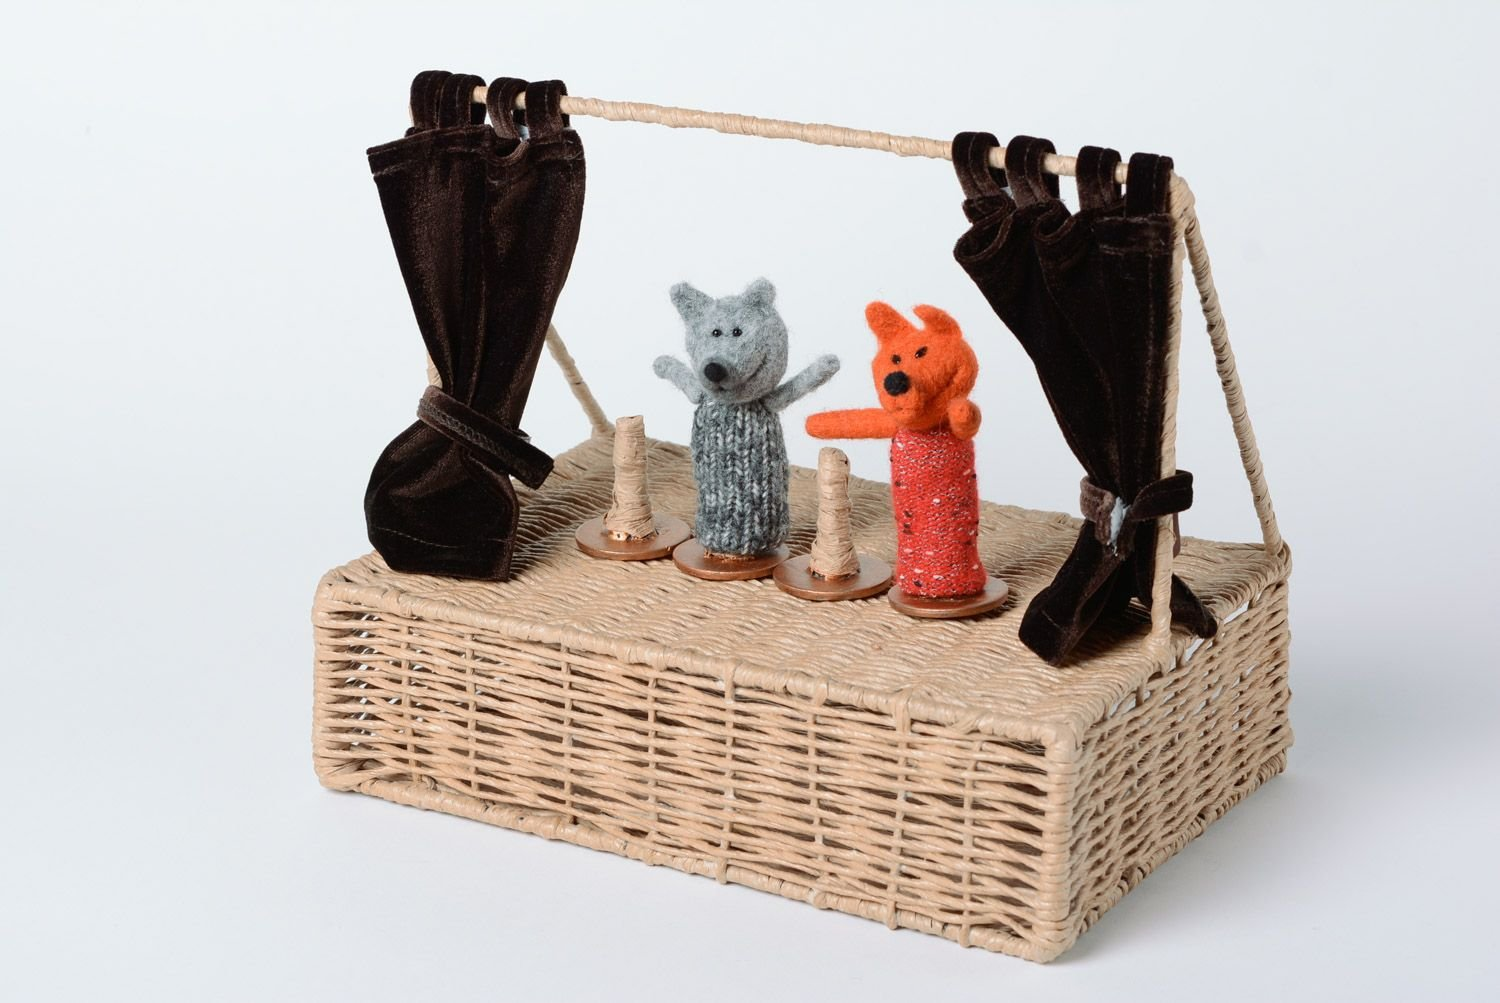 Set Of Handmade Scenery For Puppet Theater 1 Folding Screen And 4 Holders by MadeHeart | Buy handmade goods (Image #1)